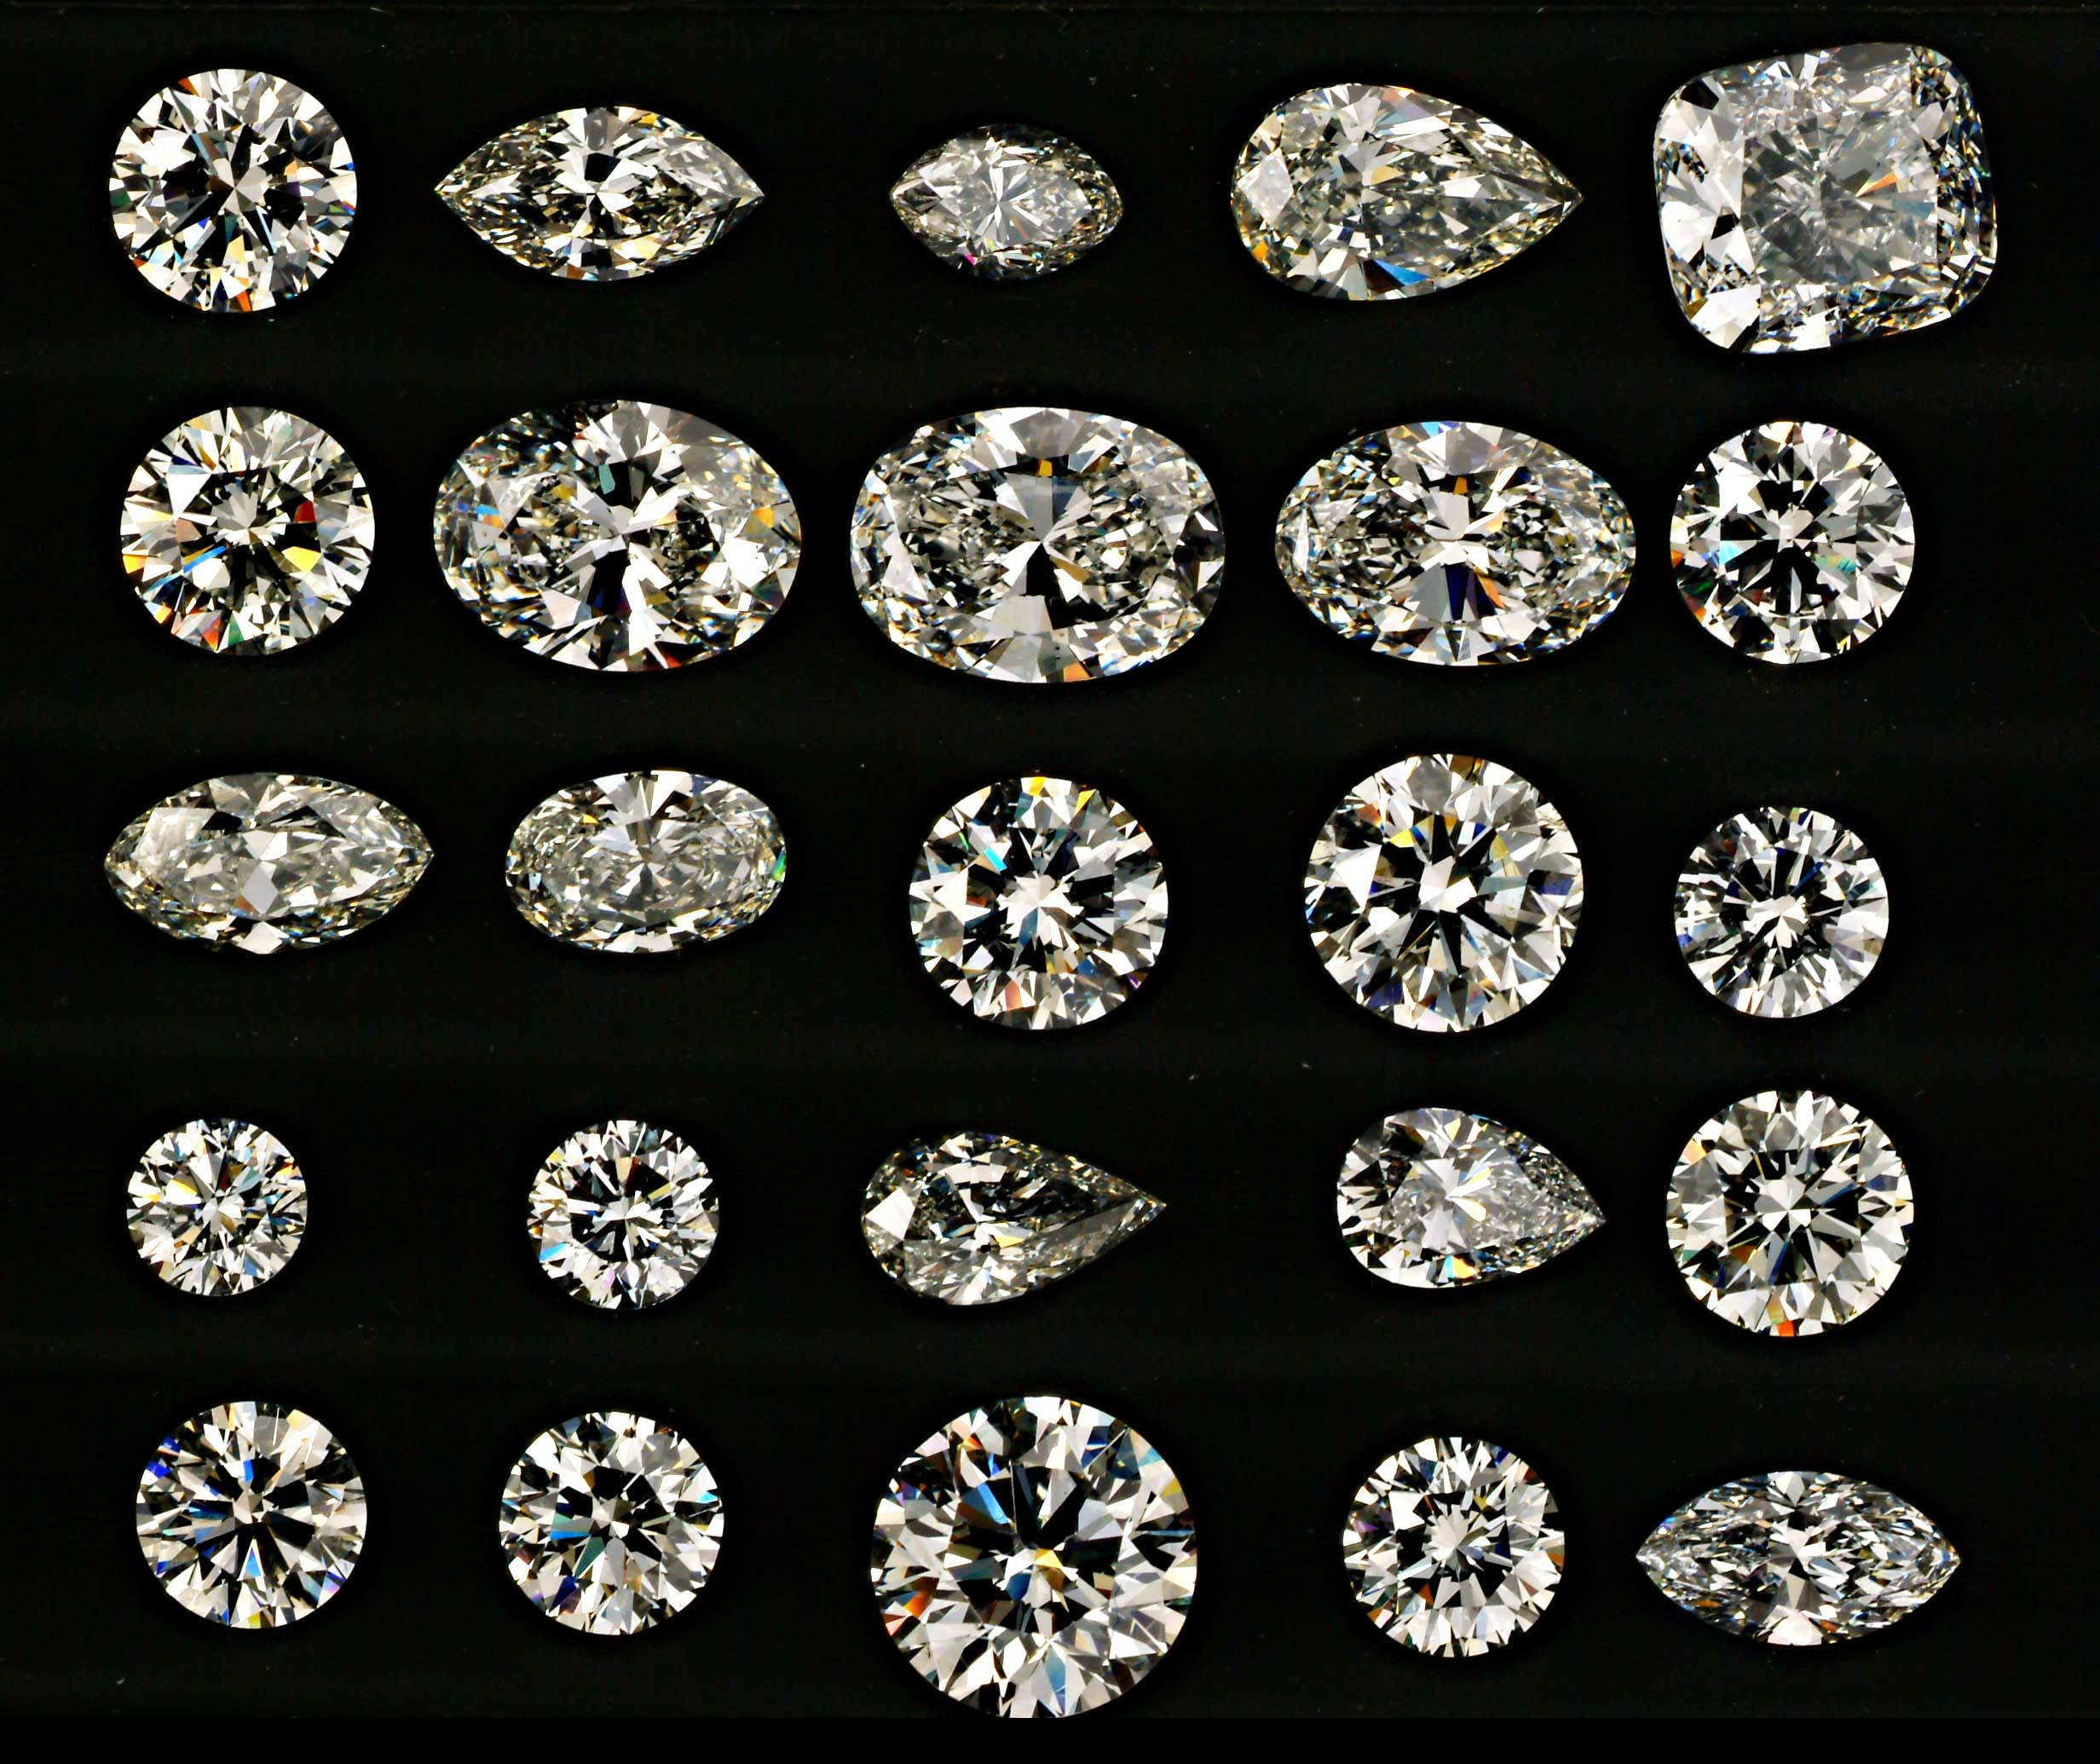 round lab diamonds ada diamond are french fake not and misconceptions why facts cloudy synthetic u